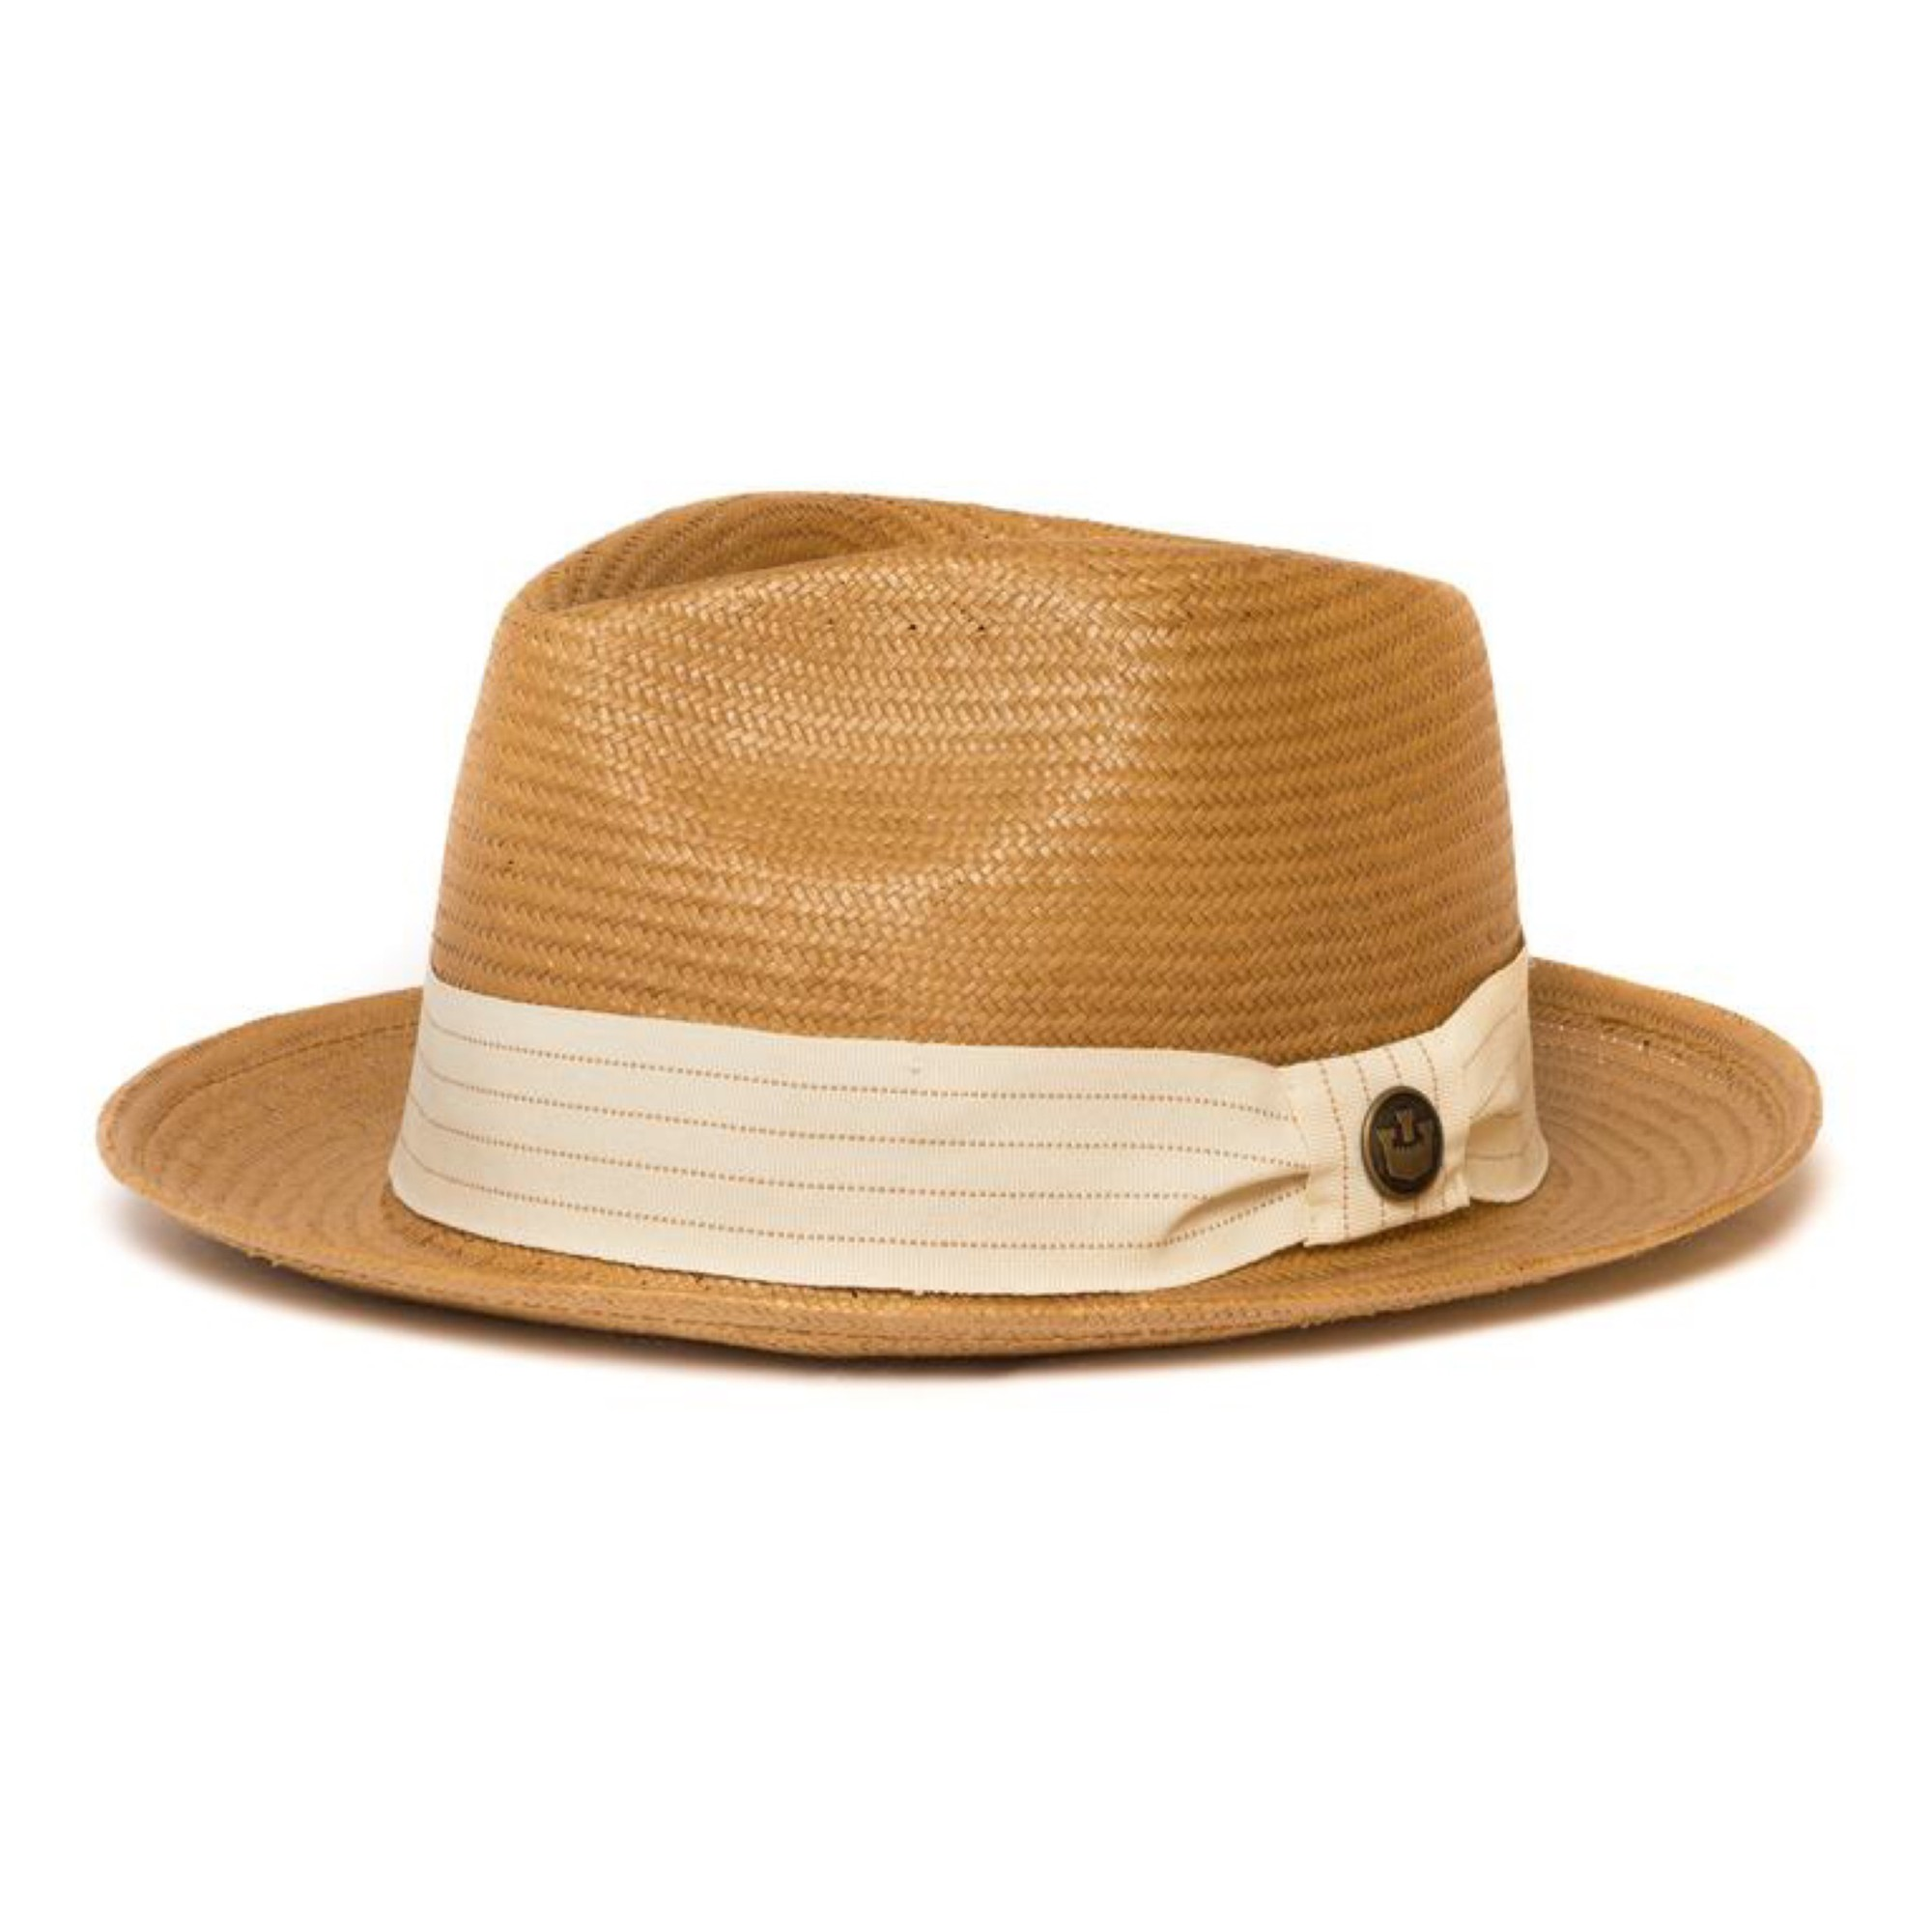 Dr-Tumbletys-Apothecary-inspired-by-spirits-distilling-company-Pittsburgh-goorin-bros-hat-fedora-gangster-miami-straw-natural-tan-camel-straw-grosgrain-snare-pinched-white-band